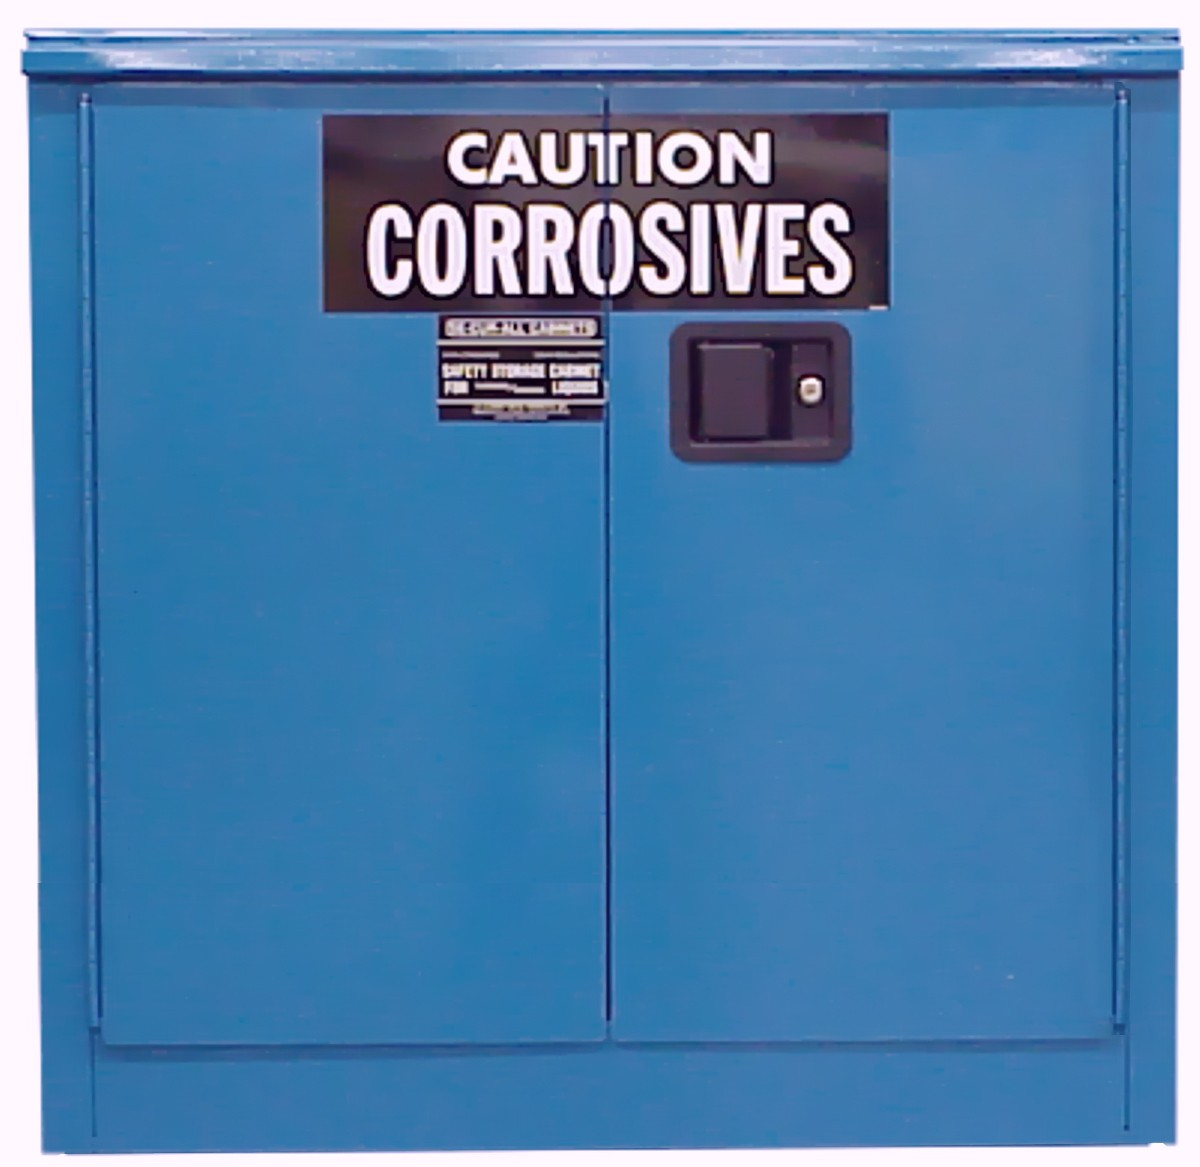 Cabinets for Storing Acids, Corrosives, and Lab Supplies